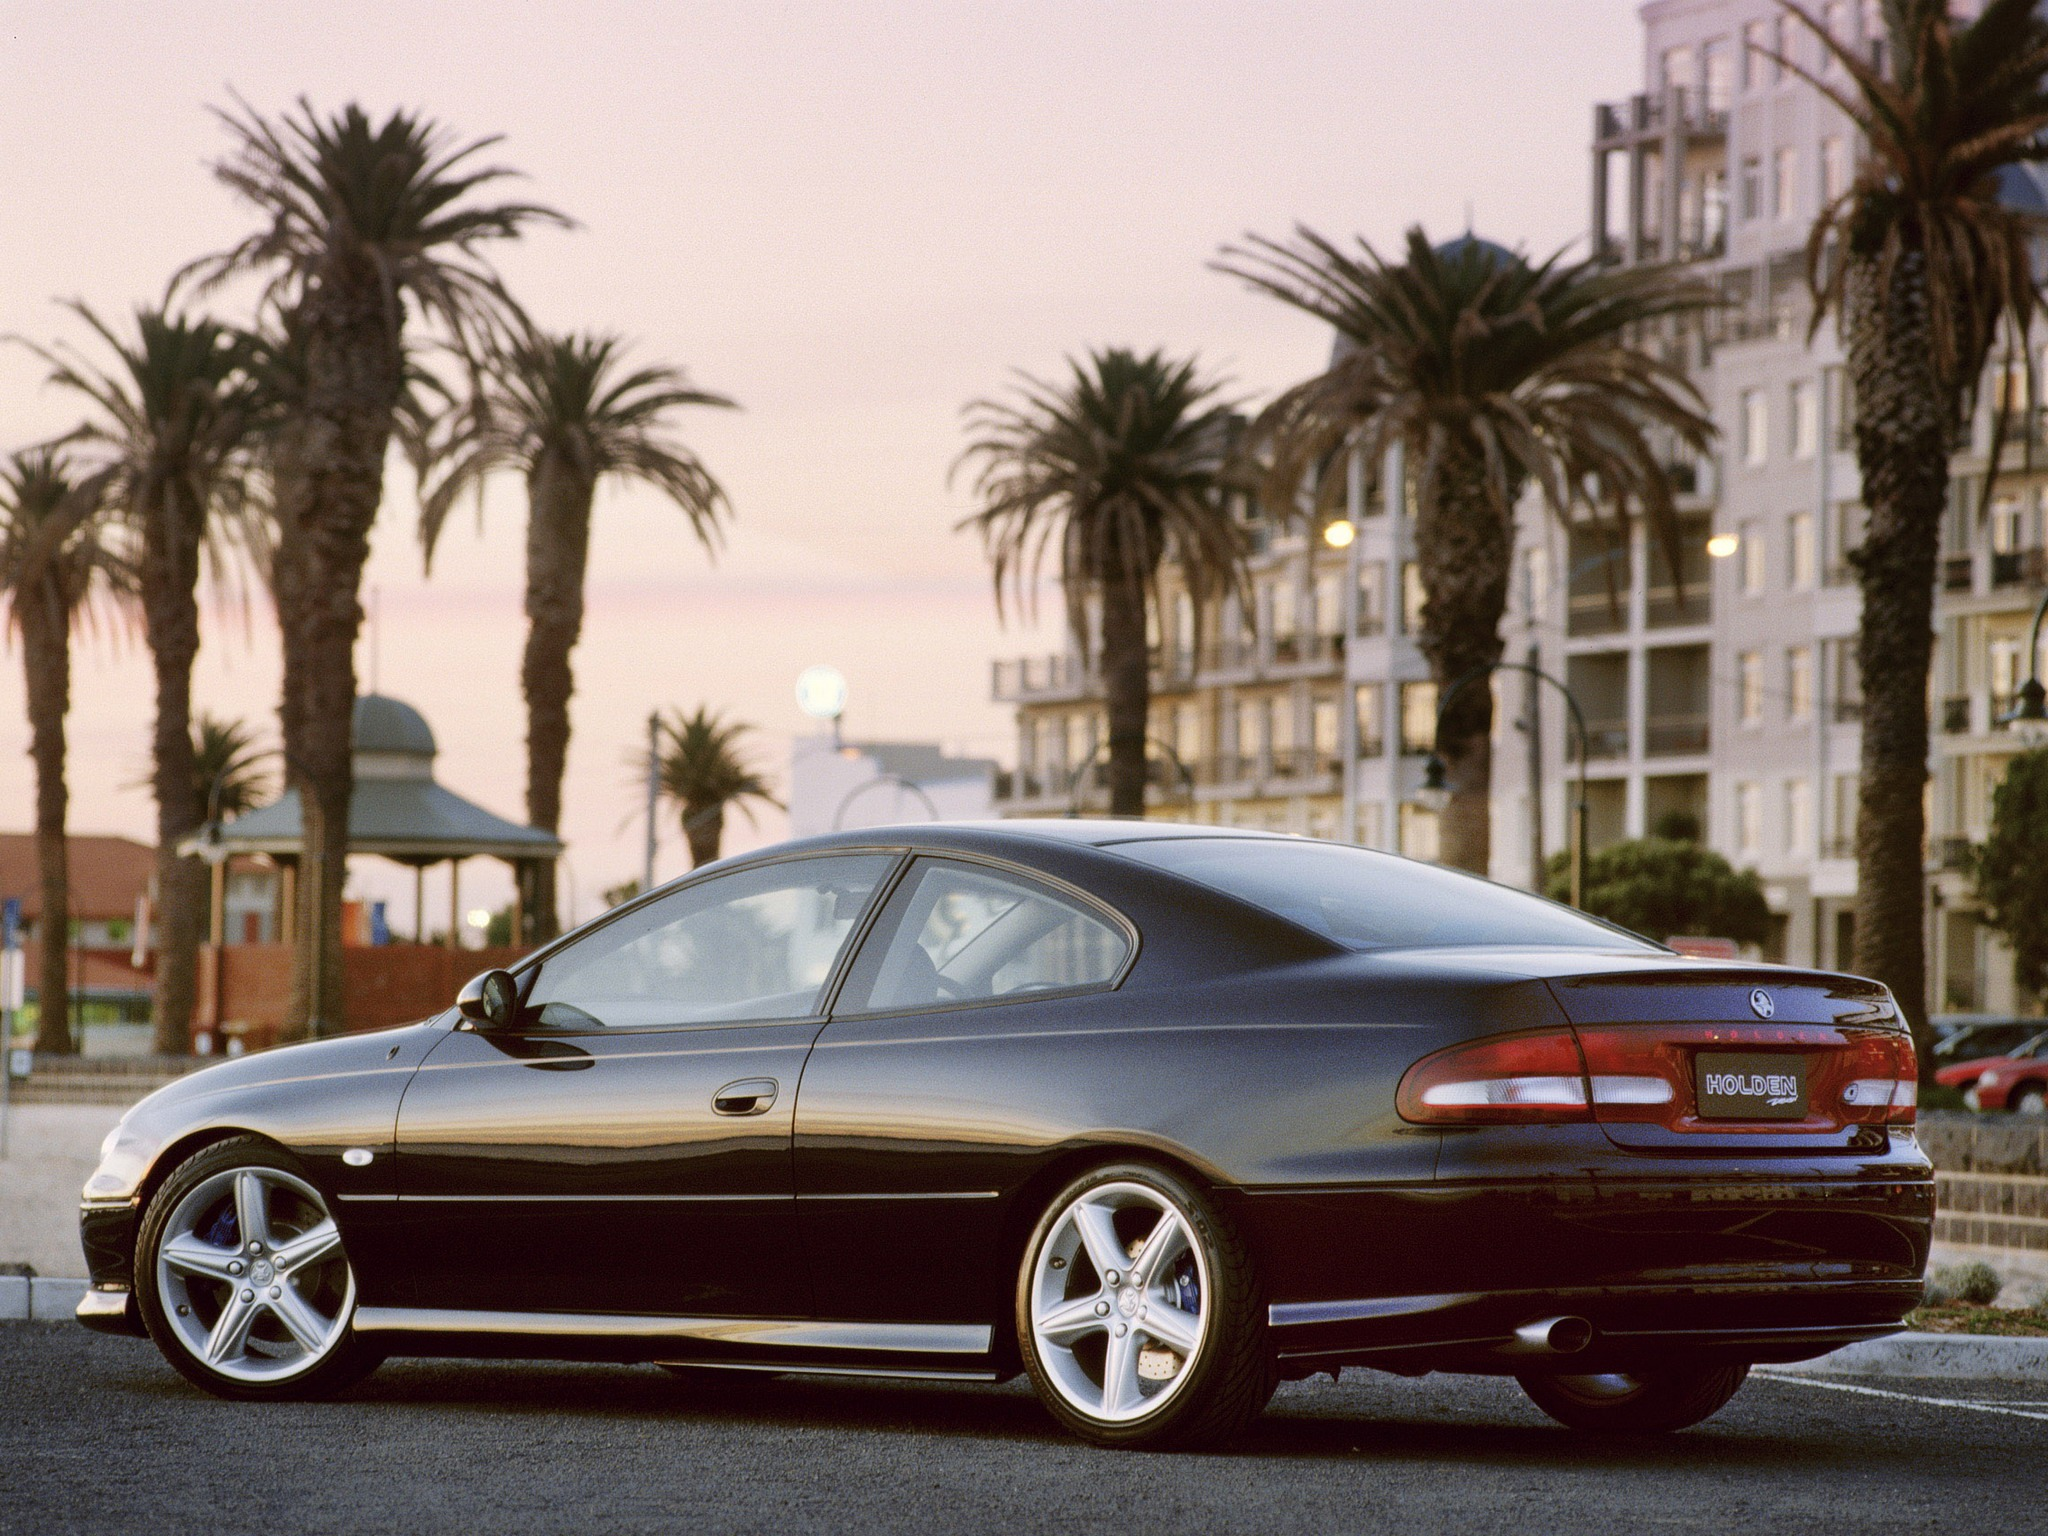 Holden coupe concept 1998 old concept cars 1998 holden coupe concept 1998 holden coupe concept vanachro Image collections